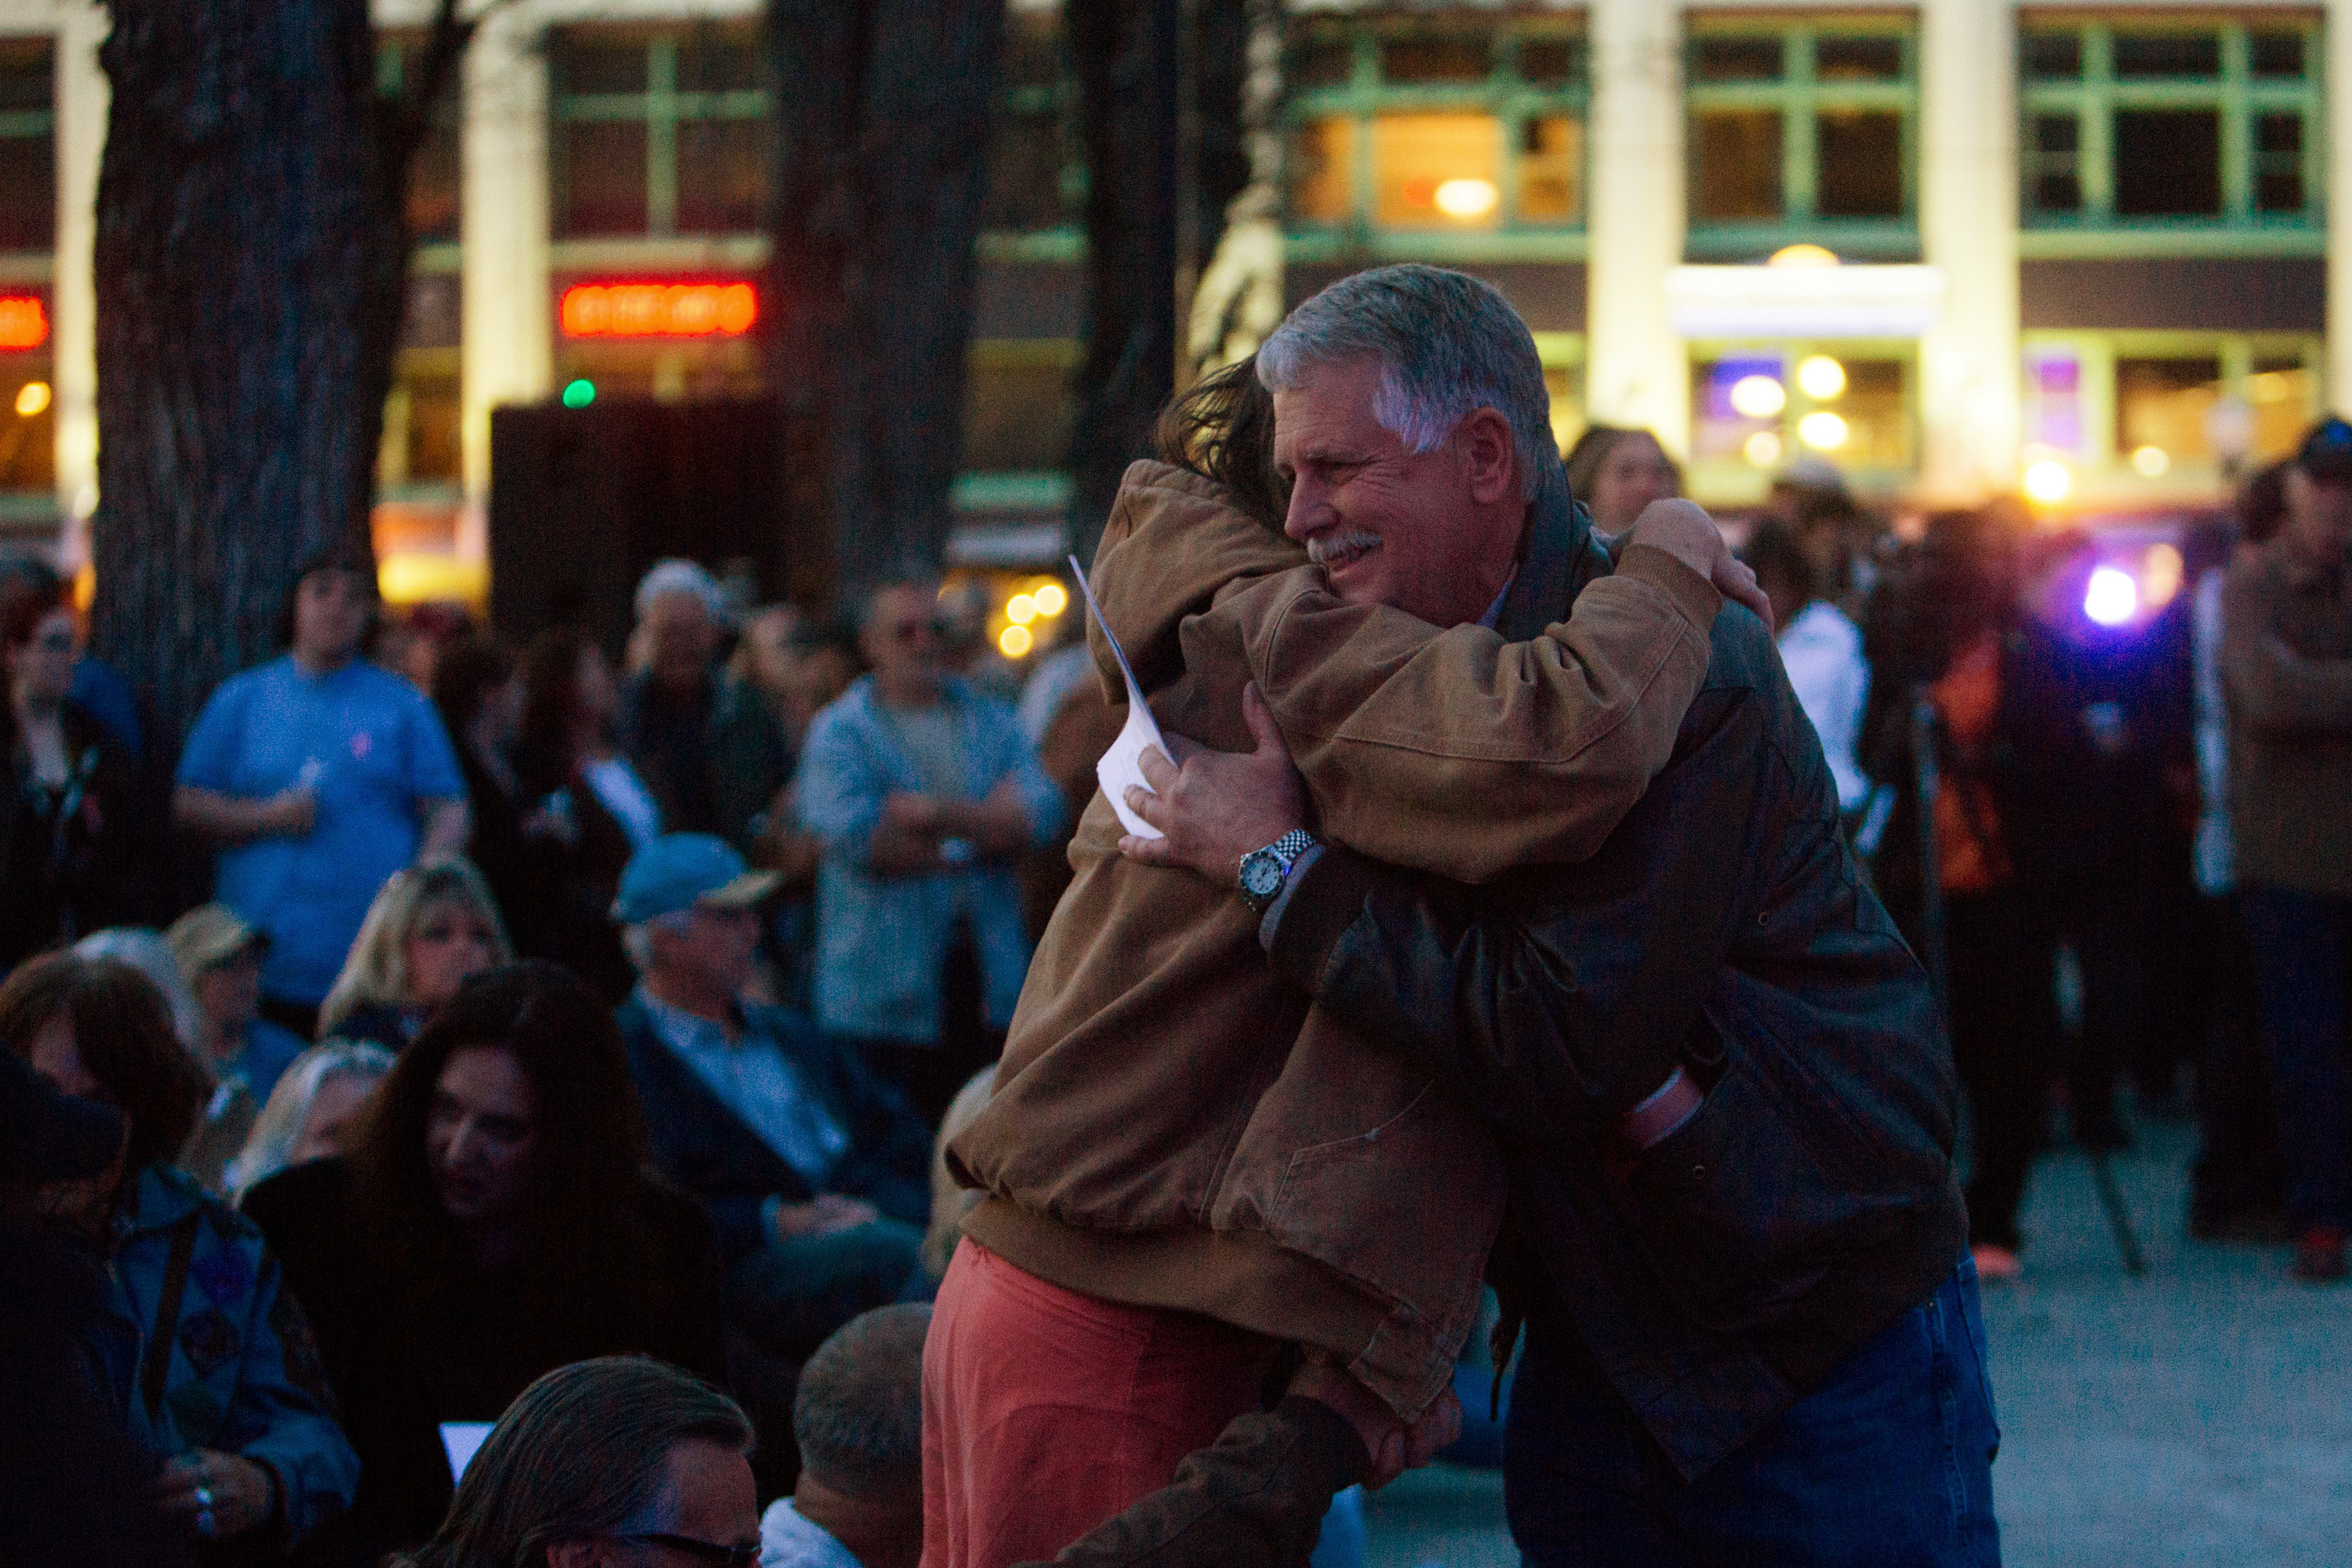 Carl Mueller is greeted by friends at a candlelight memorial honoring his daughter aid worker Kayla Mueller at the Prescott's Courthouse Square in Prescott, Arizona, February 18, 2015. REUTERS/Deanna Dent